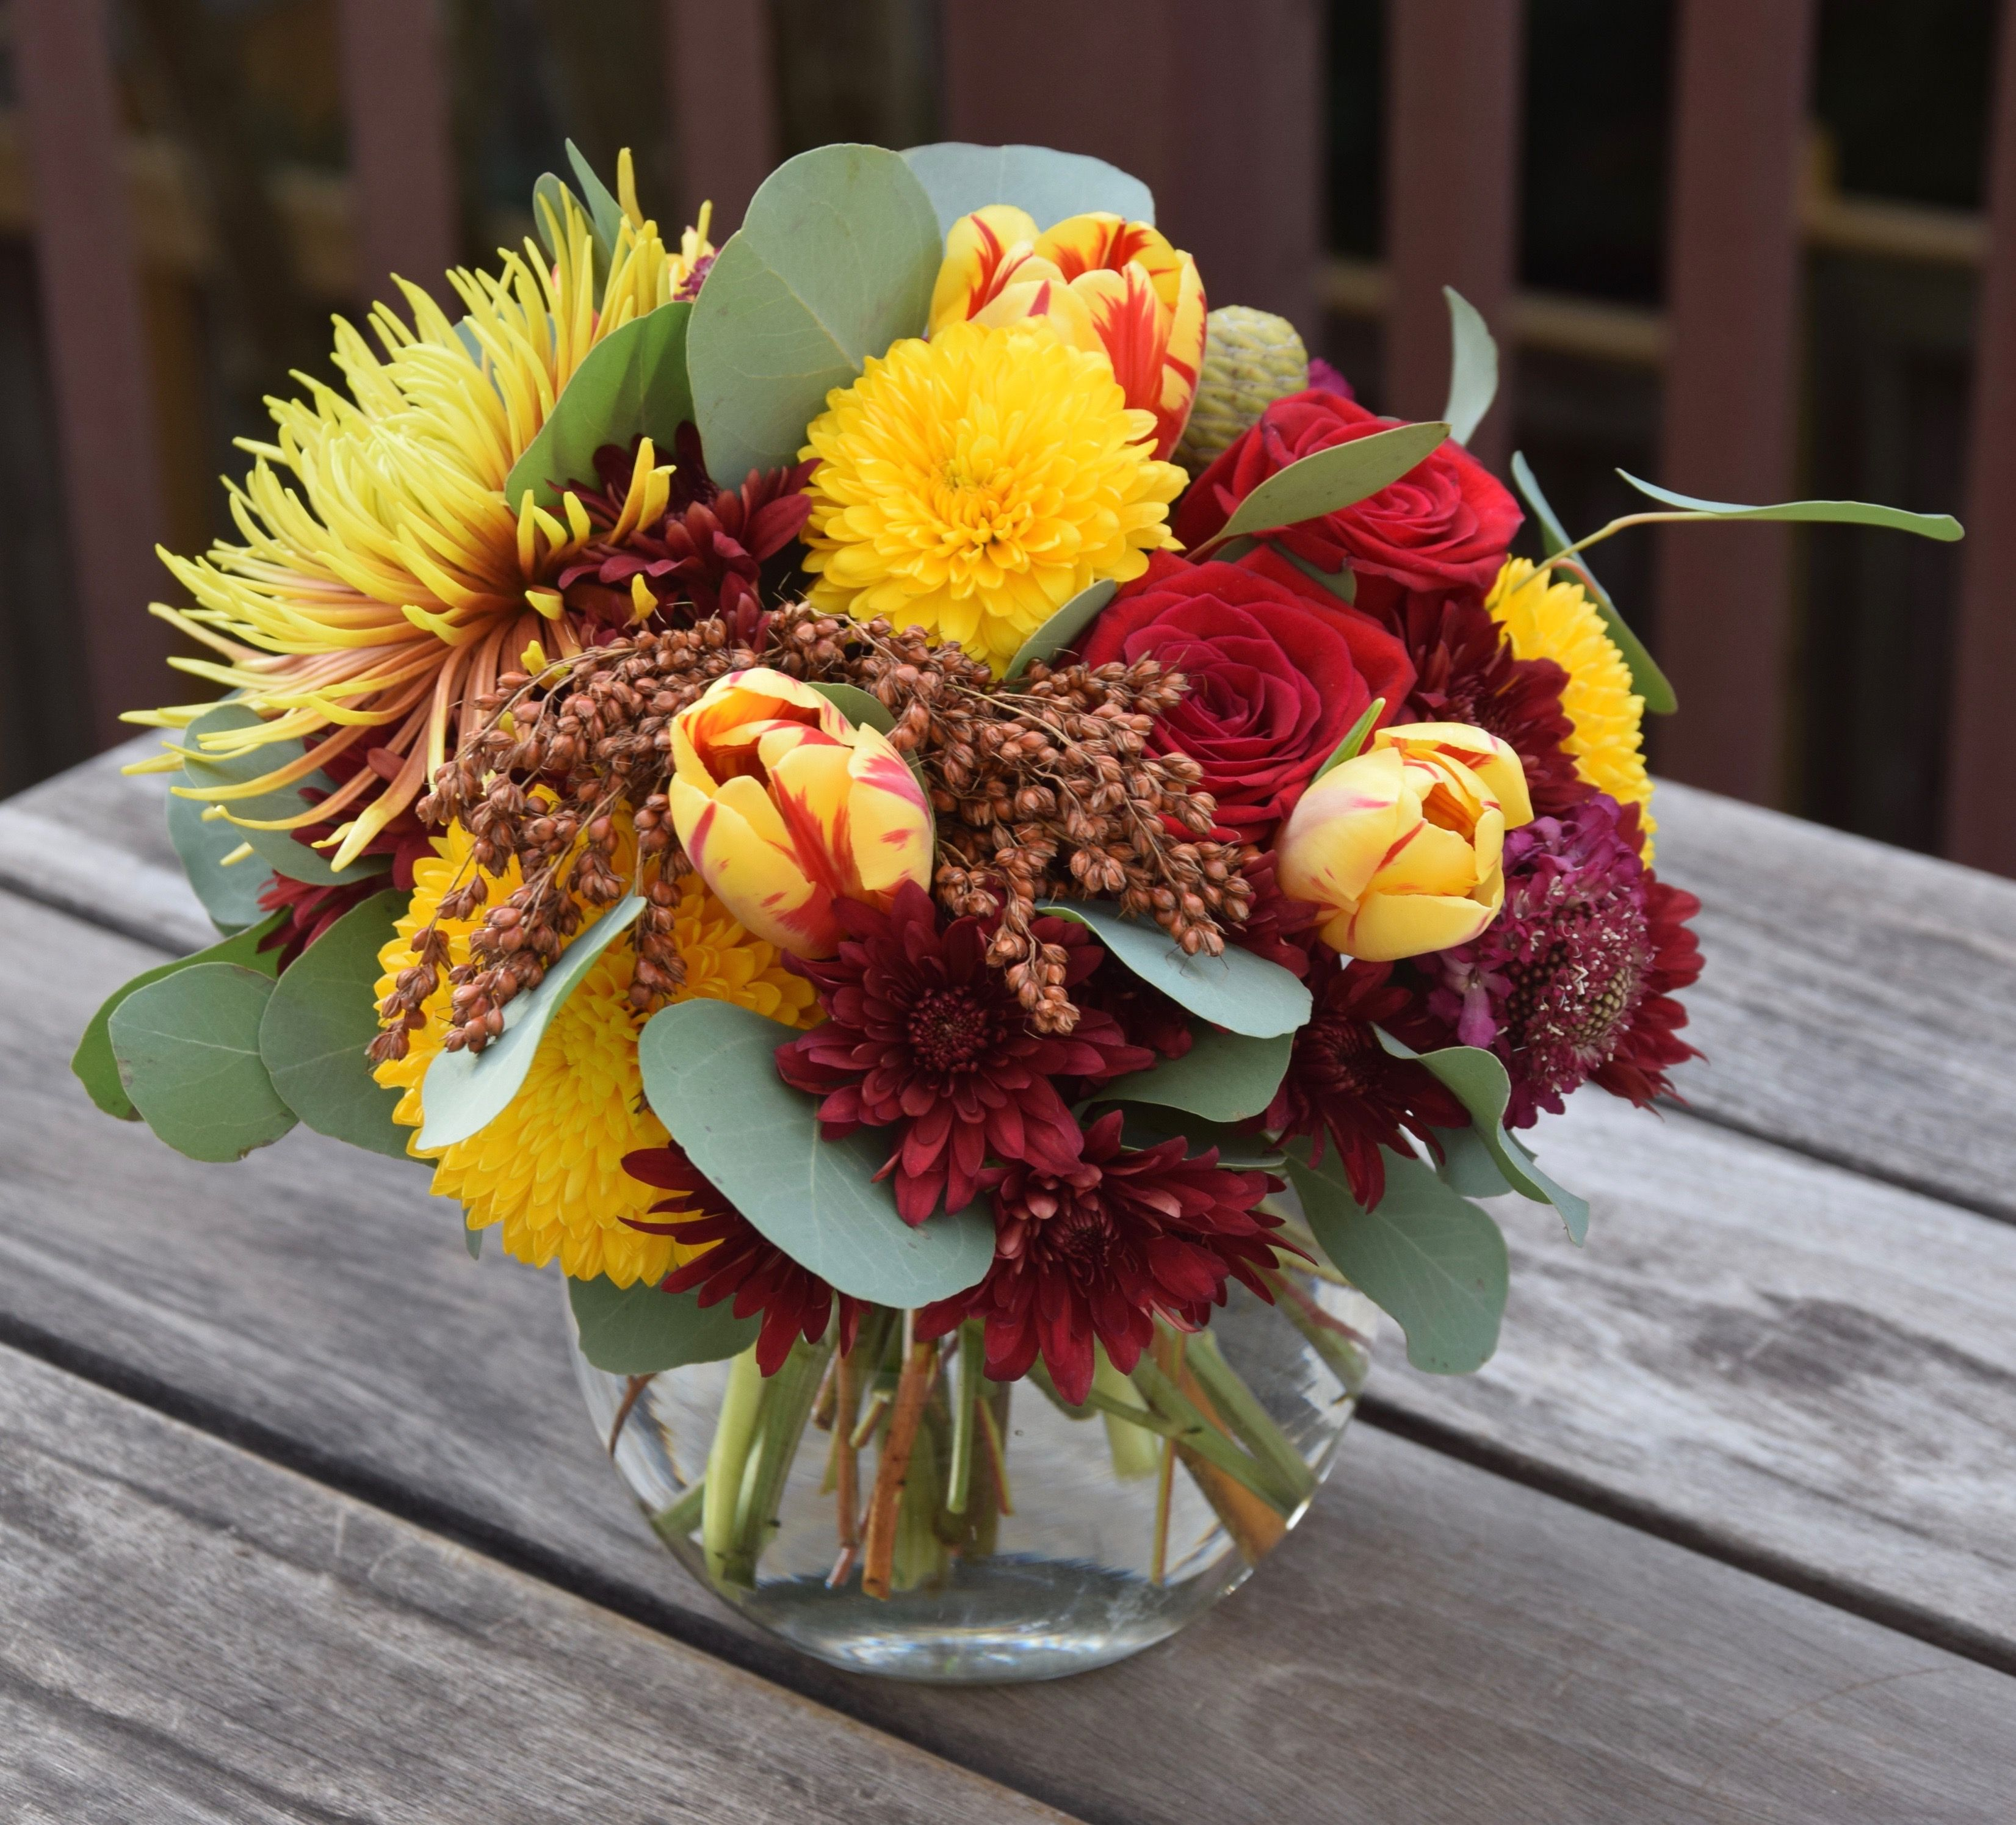 Flower Bowl With Fall Colors And Autumn Flowers Fresh Flowers Arrangements Flower Arrangements Flower Bowl